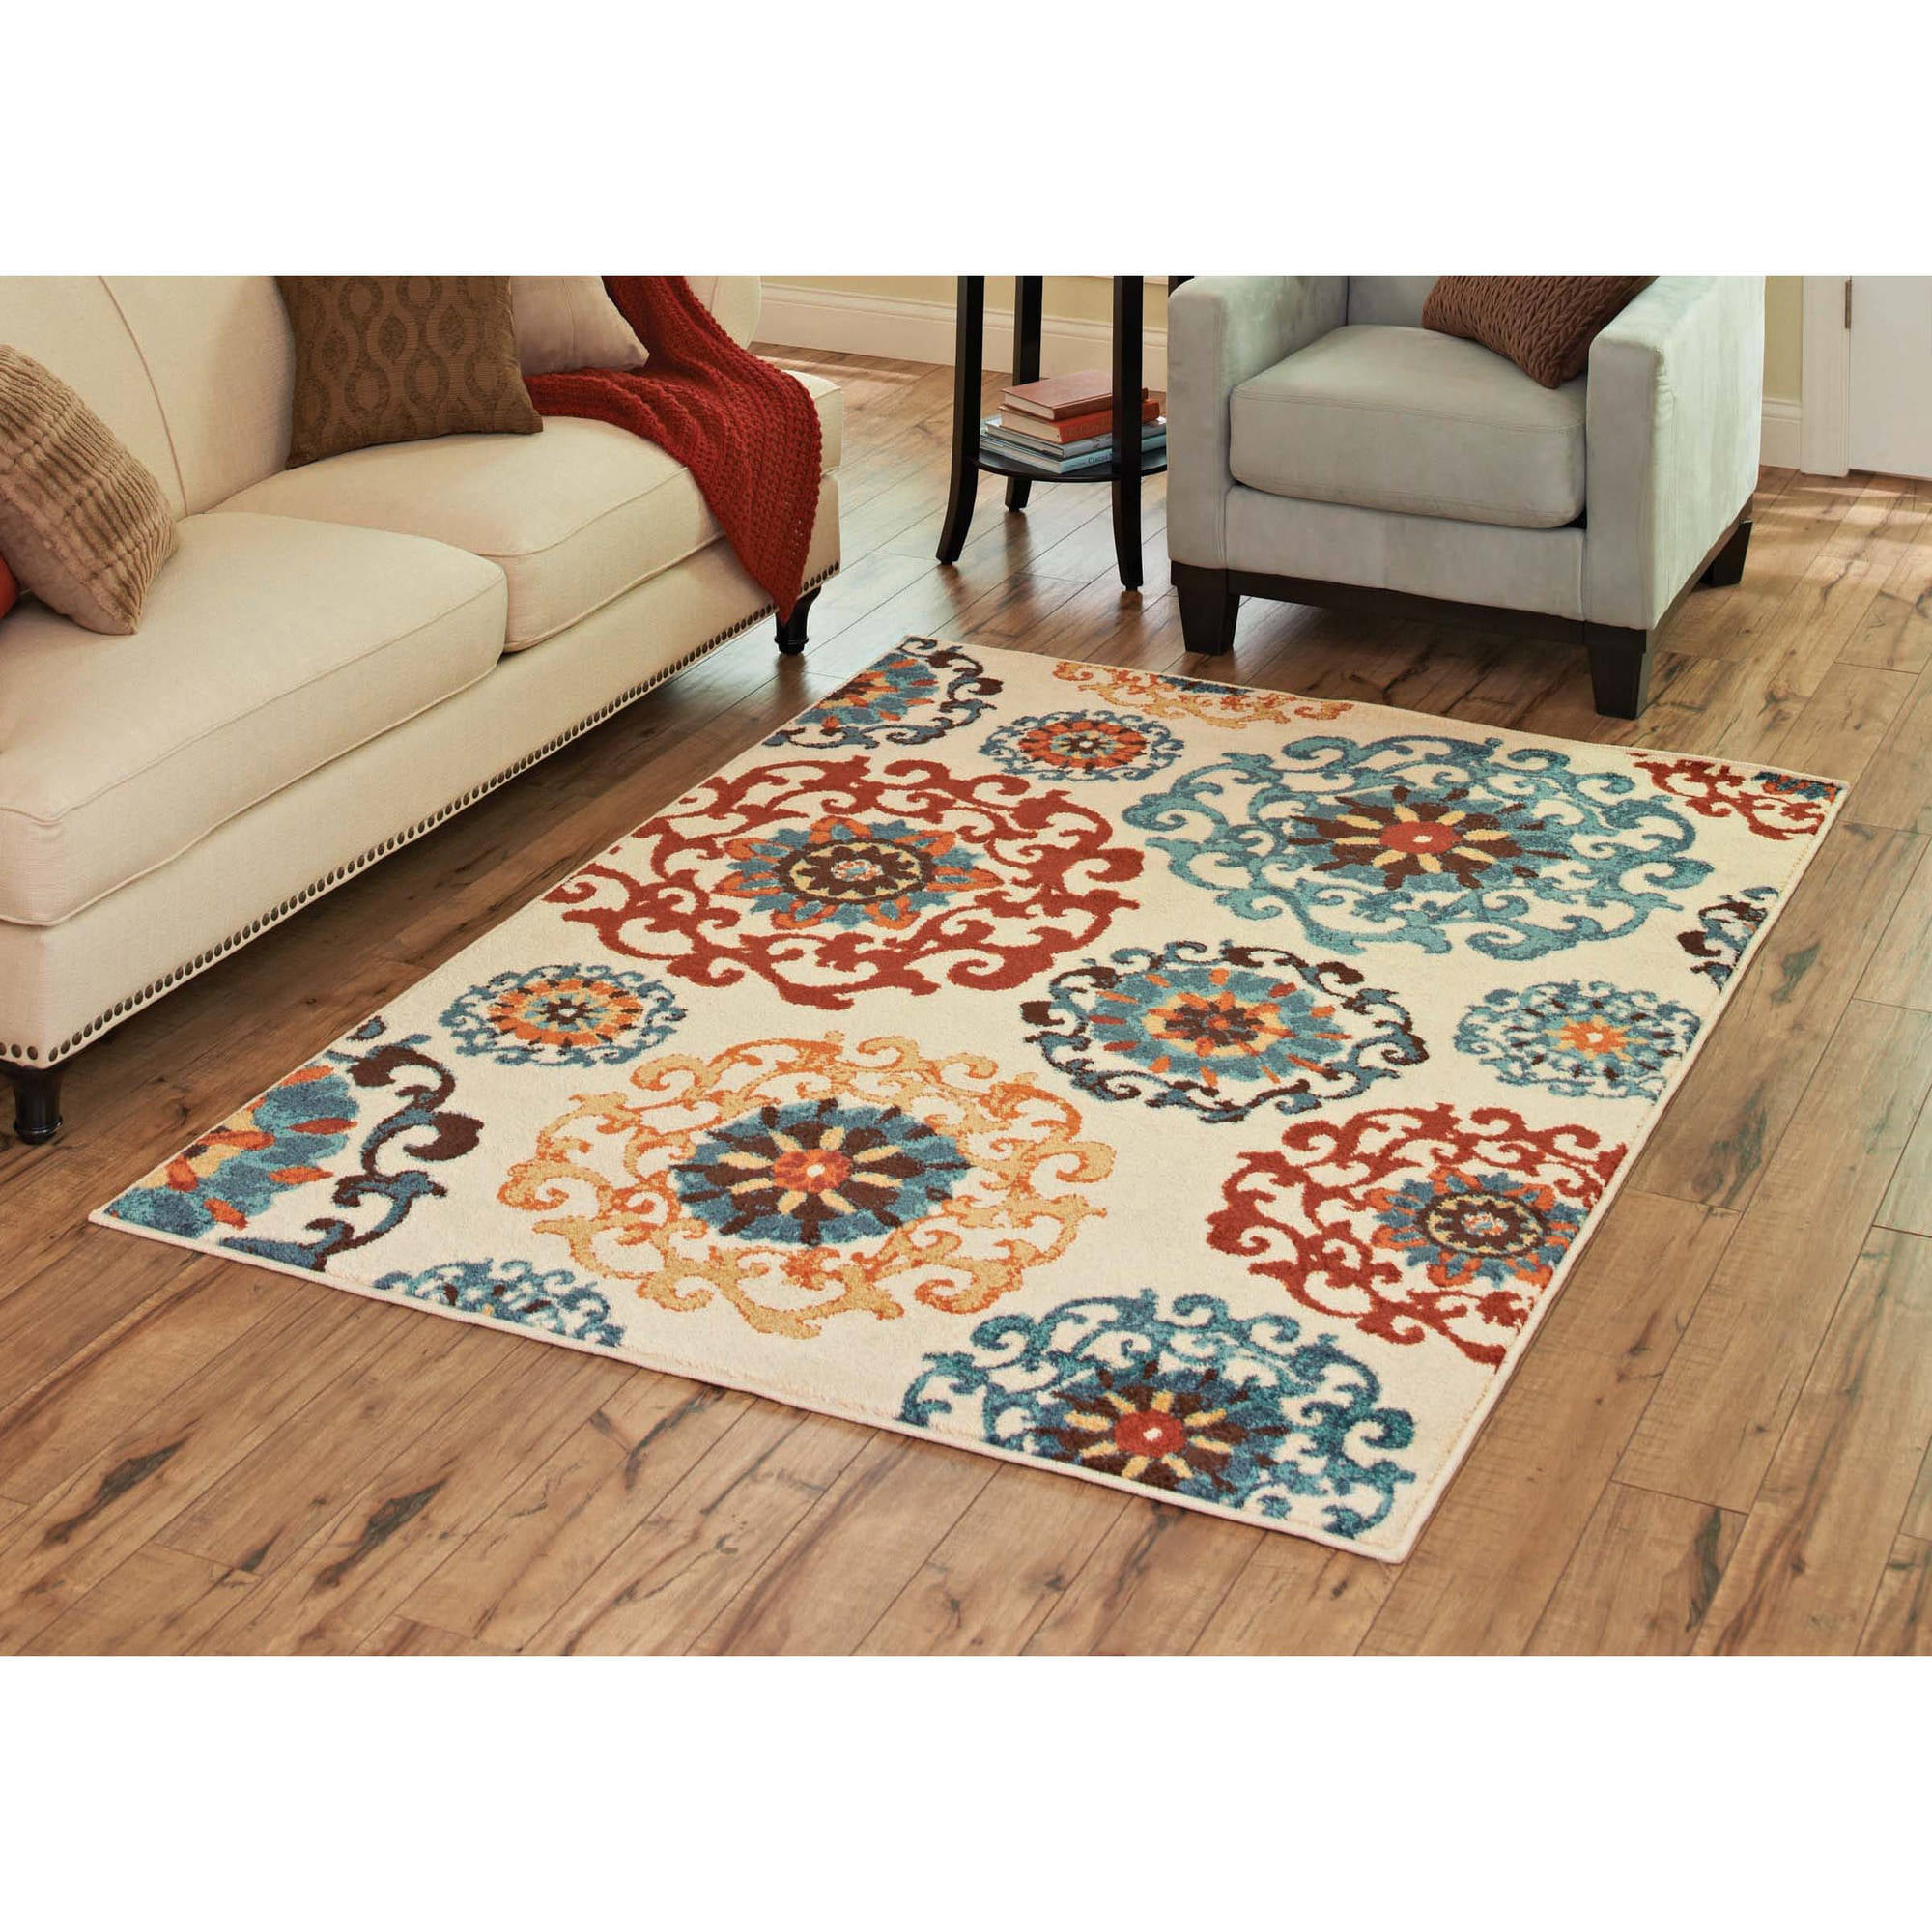 mills natural andover x rugs beautiful livextrend cerulean of rug area luxury tan blue best